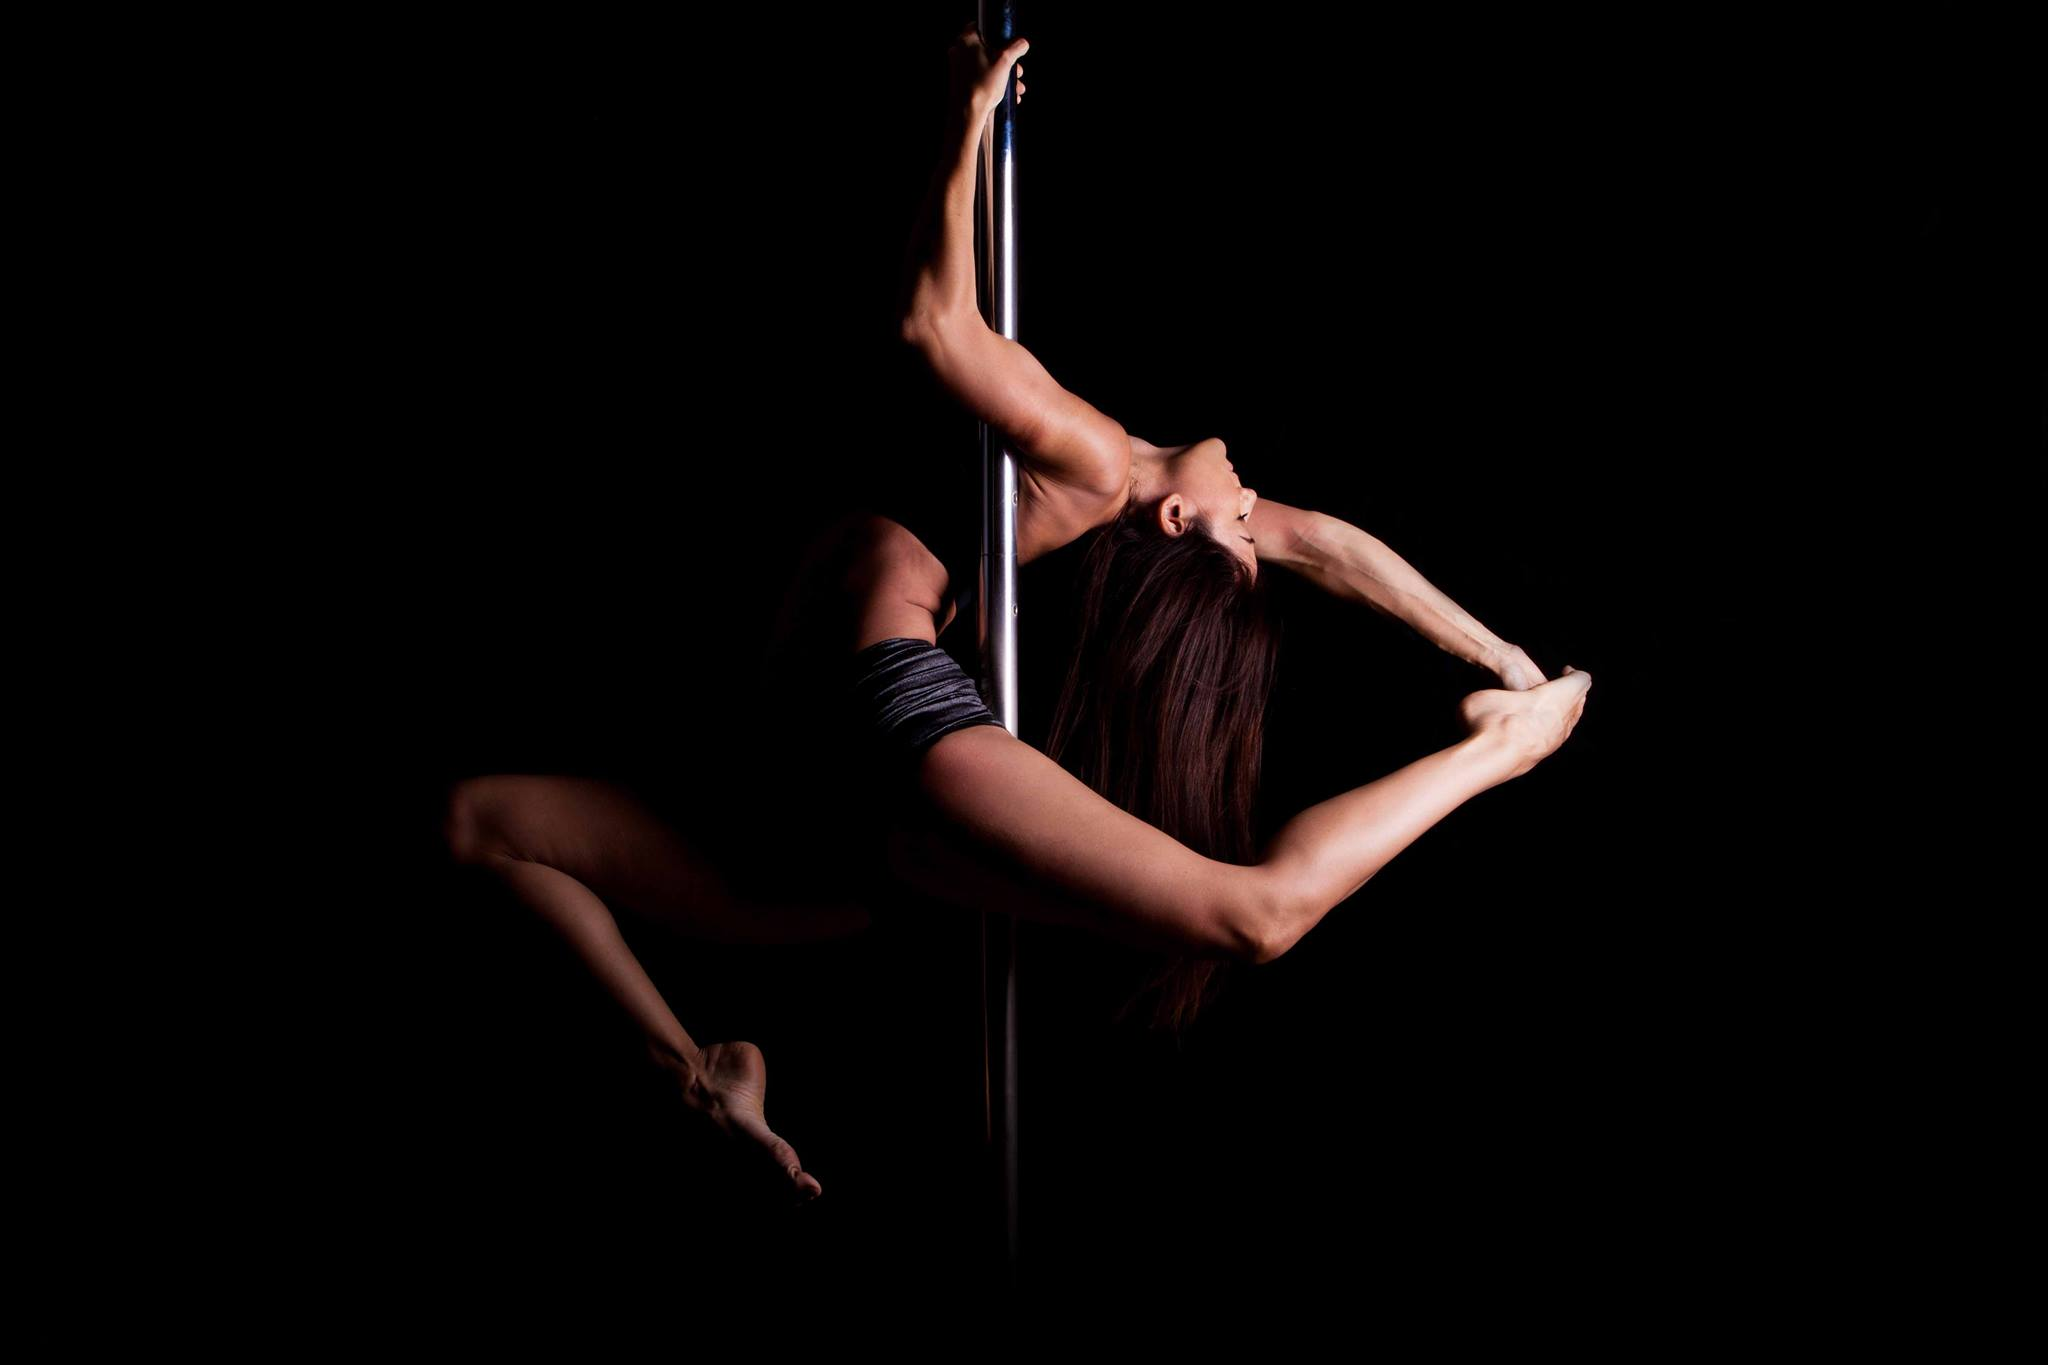 Warrior Pole and Aerial studio taipa macau pole dance